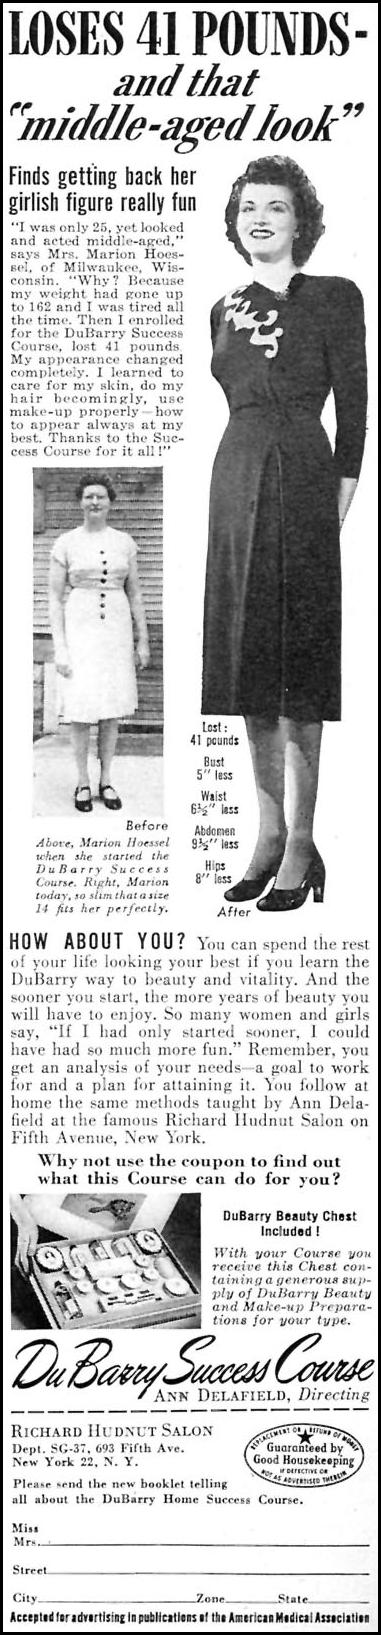 DUBARRY SUCCESS COURSE WOMAN'S DAY 07/01/1946 p. 9